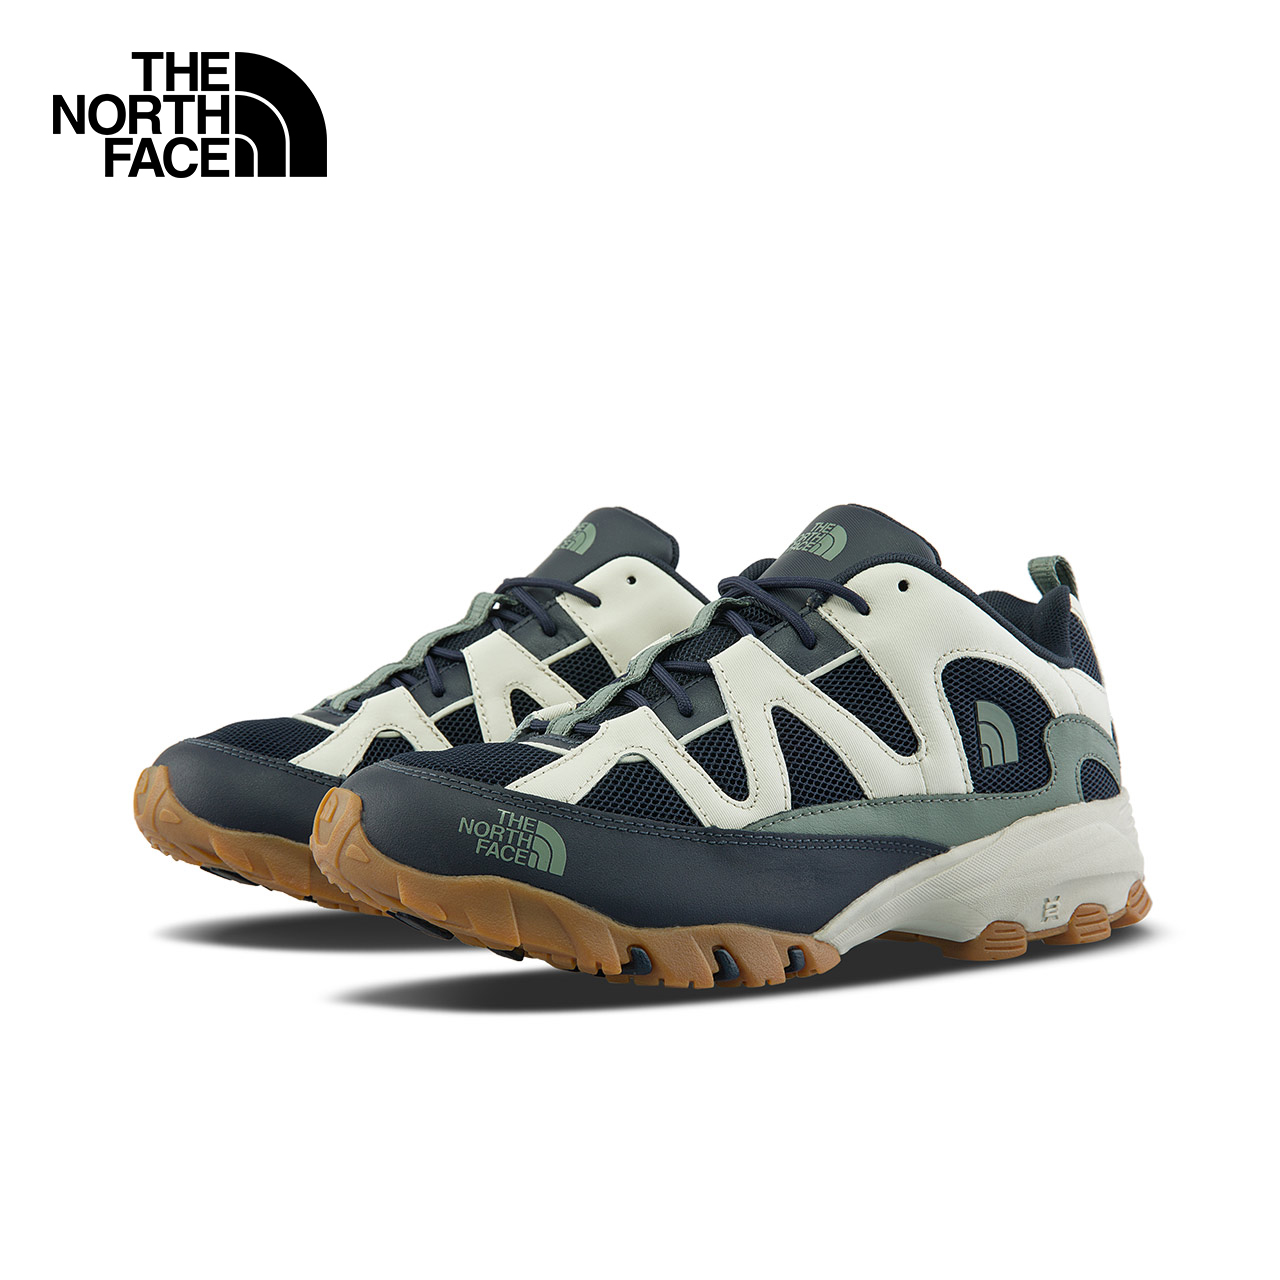 The NorthFace North ARCHIVE TRAIL FIRE ROAD Mens Walking Shoes Casual Shoes) 4CET